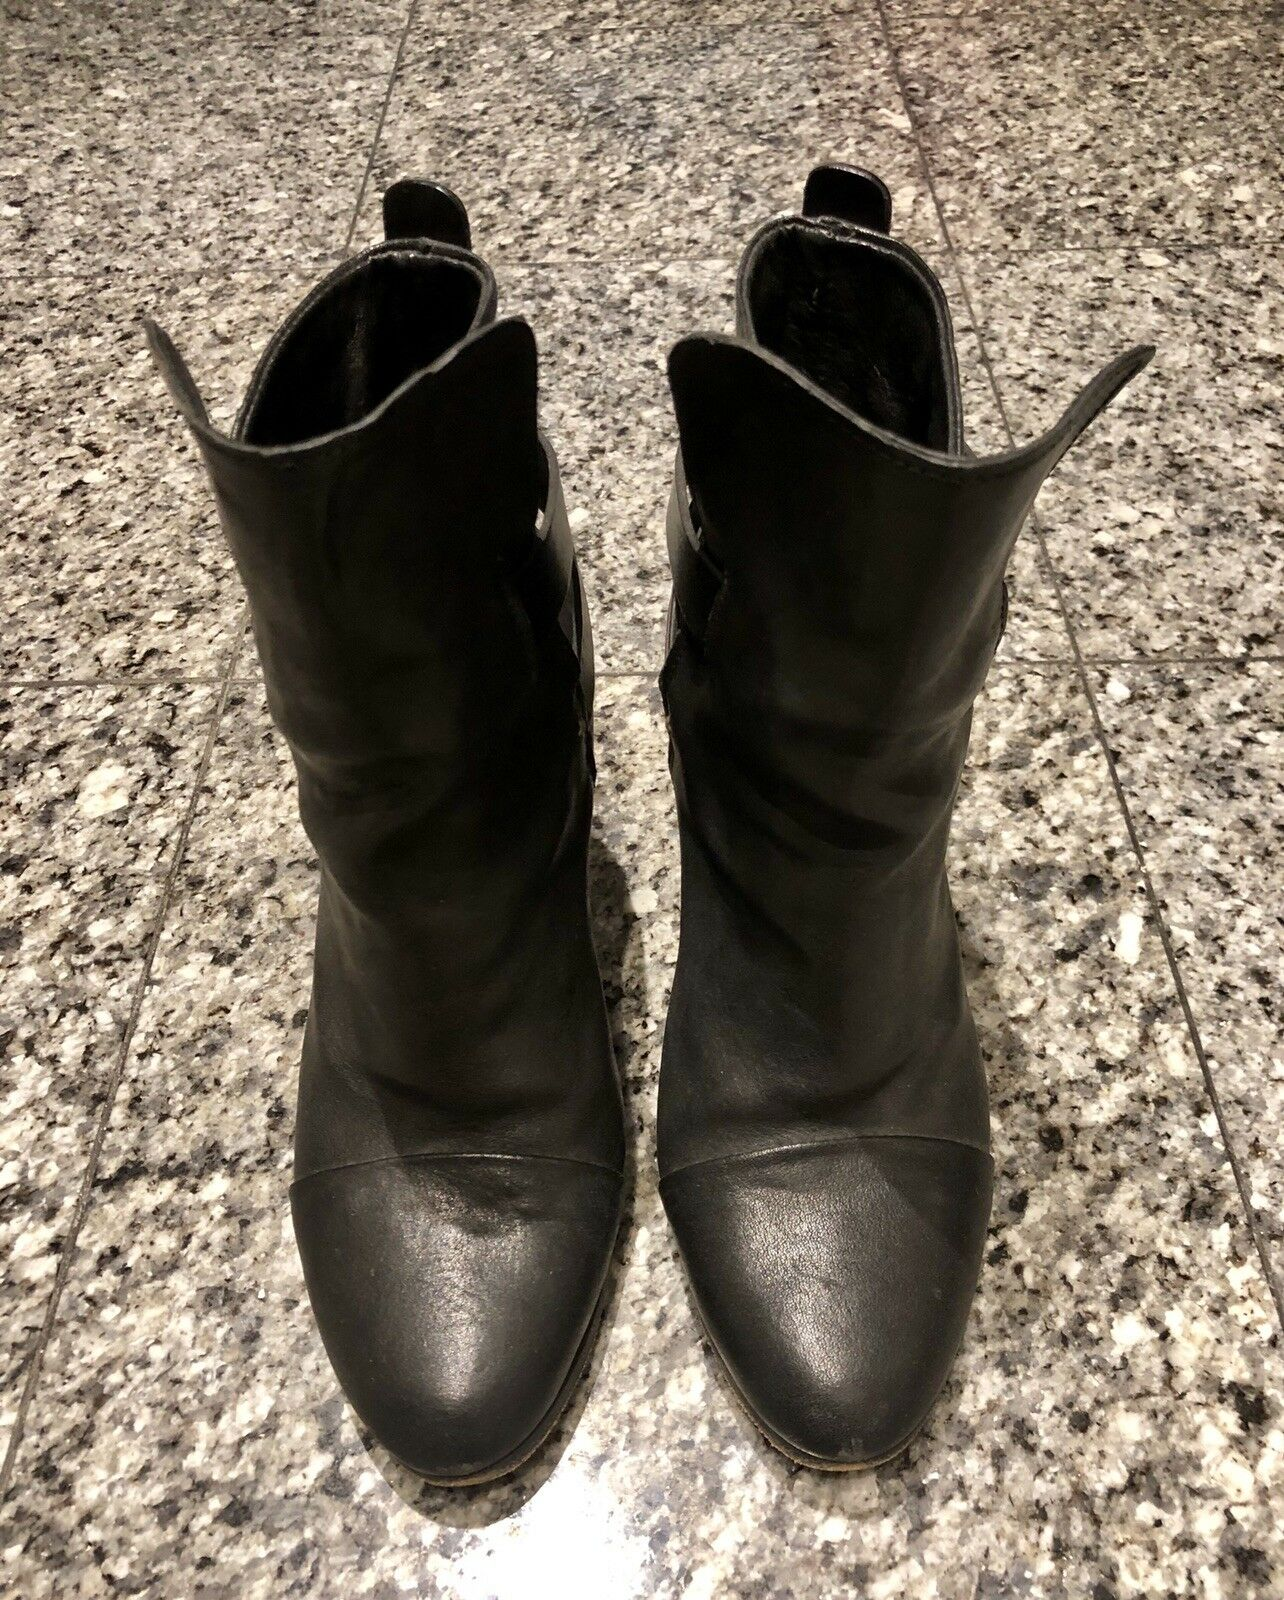 Rag and Bone Harrow Black Leather Booties Ankle Boots